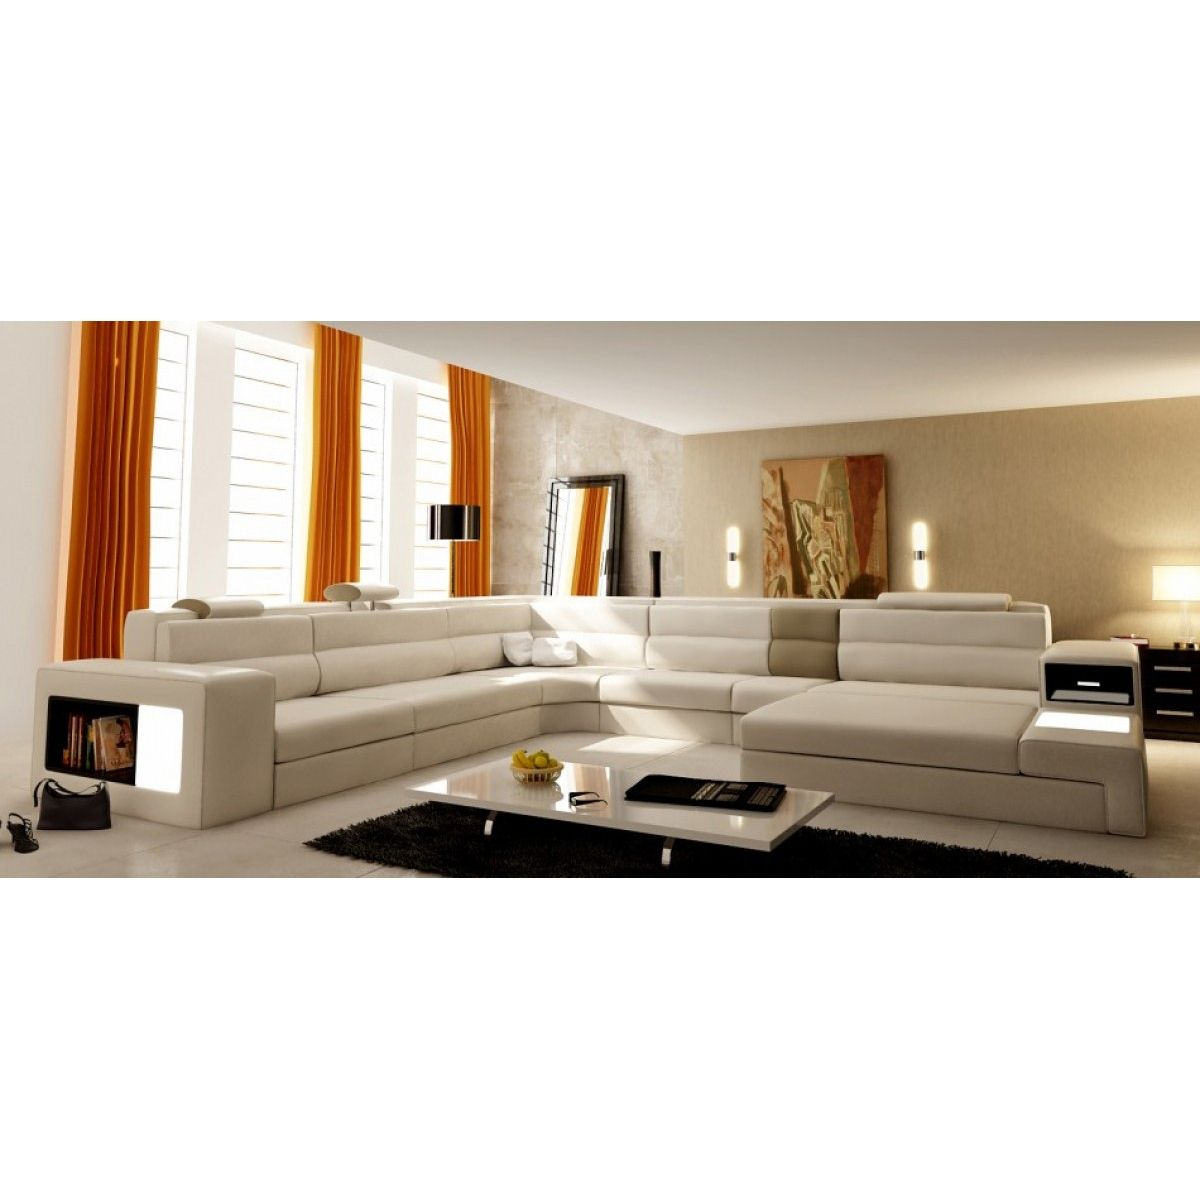 deco in paris canape panoramique en cuir beige angle. Black Bedroom Furniture Sets. Home Design Ideas